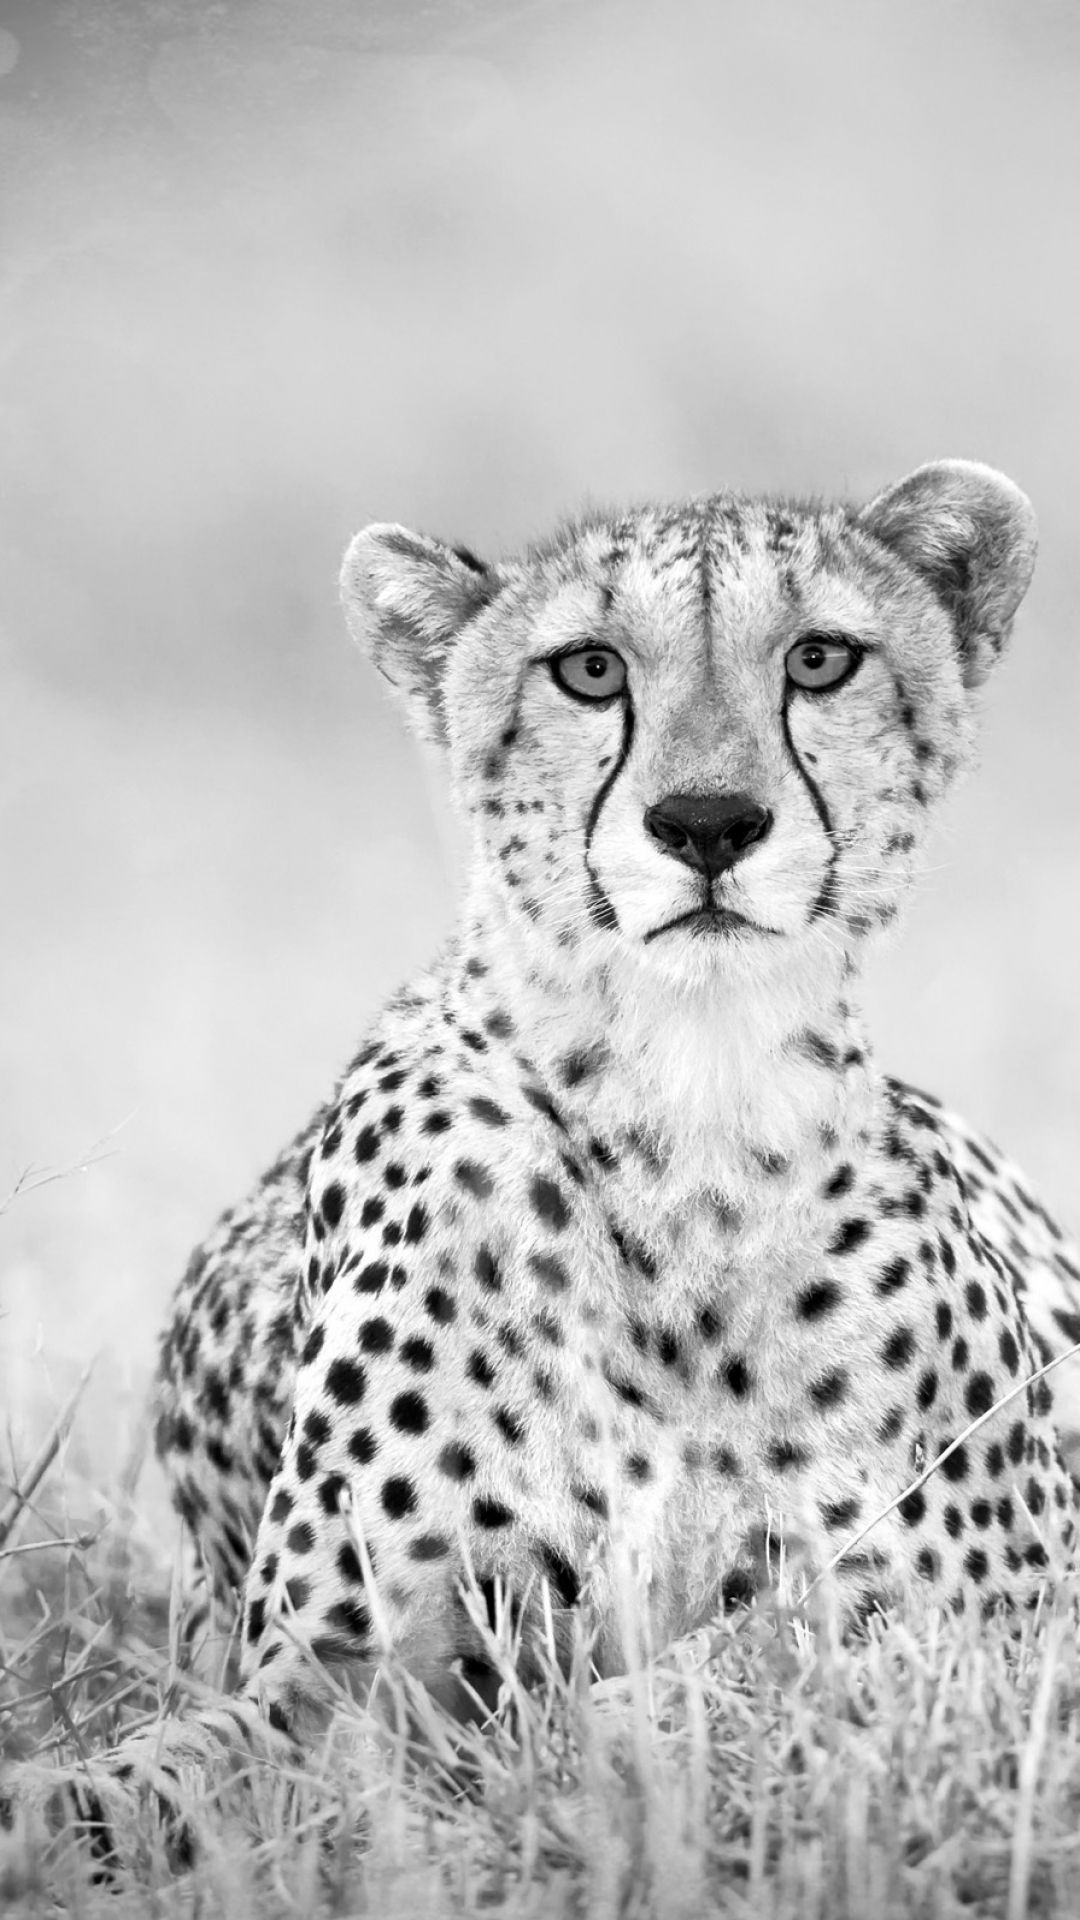 Iphone 6 Plus Animal Cheetah Wallpaper Id 83502 Cheetah Wallpaper Cheetah Background Animals